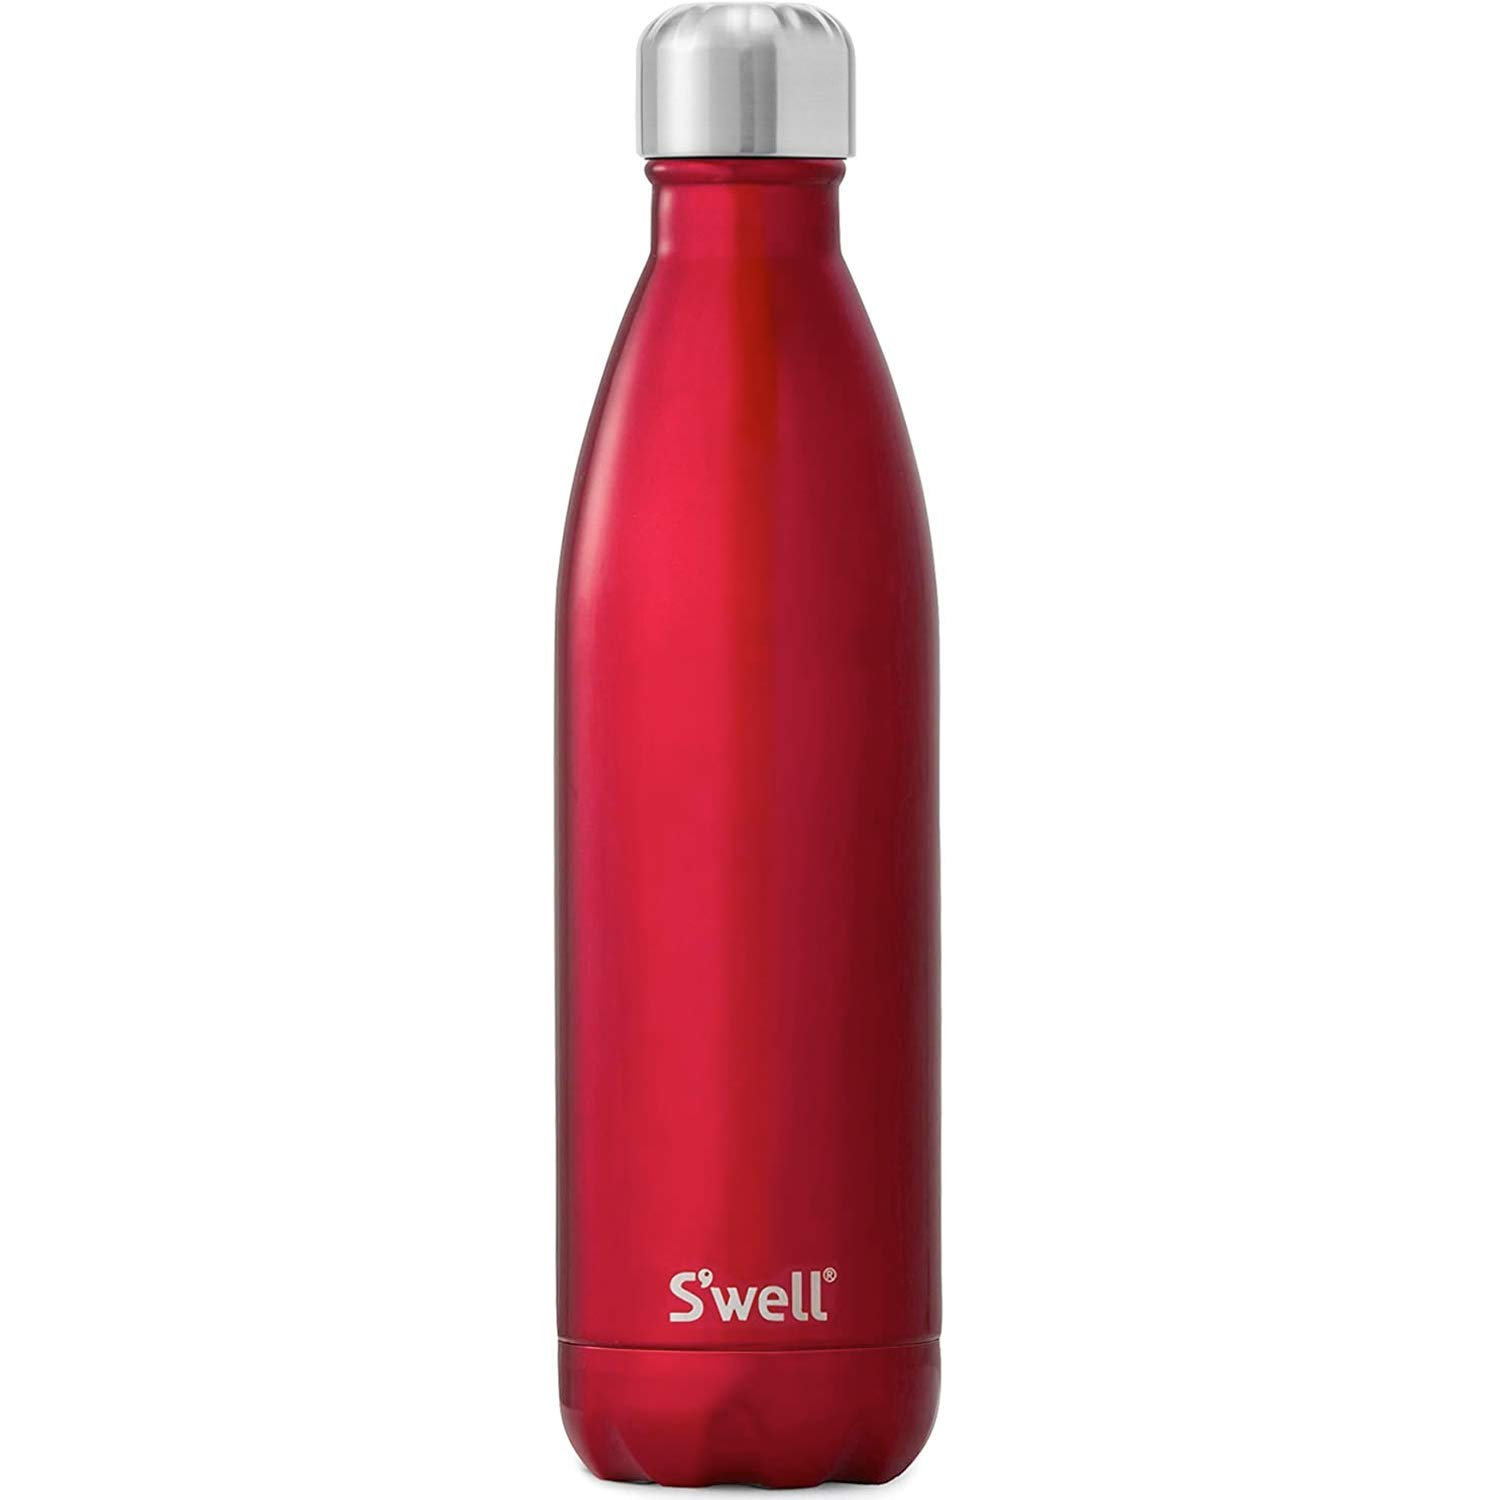 S'well Stainless Steel Water Bottle - 25 Fl Oz - Rowboat Red - Triple-Layered Vacuum-Insulated Containers Keeps Drinks Cold for 54 Hours and Hot for 26 - with No Condensation - BPA Free Water Bottle